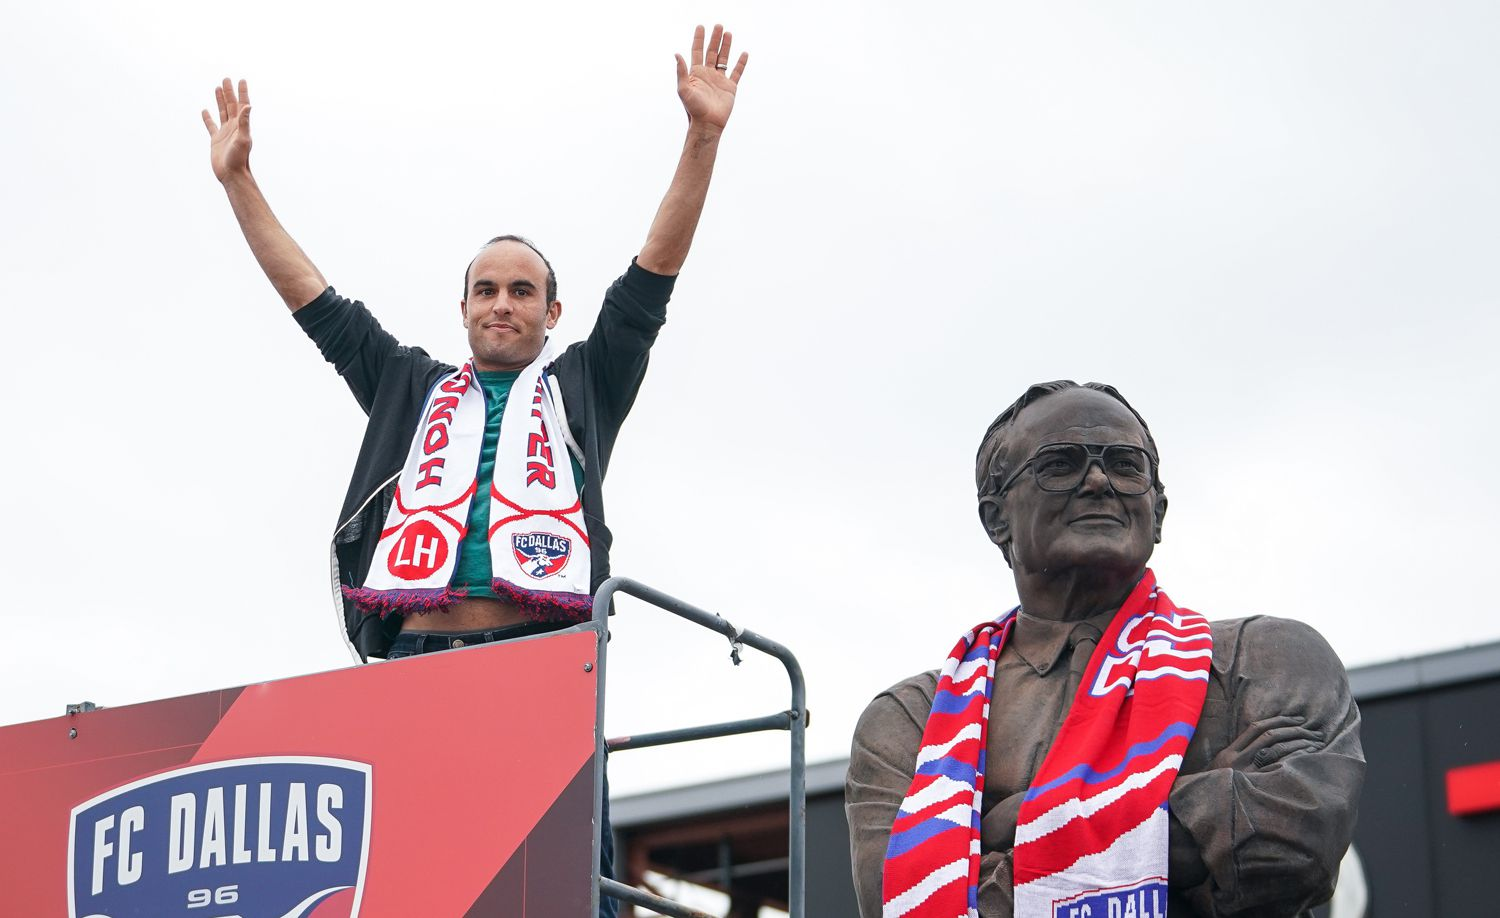 Former US Soccer star and current Dan Diego Socker Landon Donovan scarfs the Lamar Hunt statue at the FC Dallas game against Colorado Rapids.  (3-23-19)